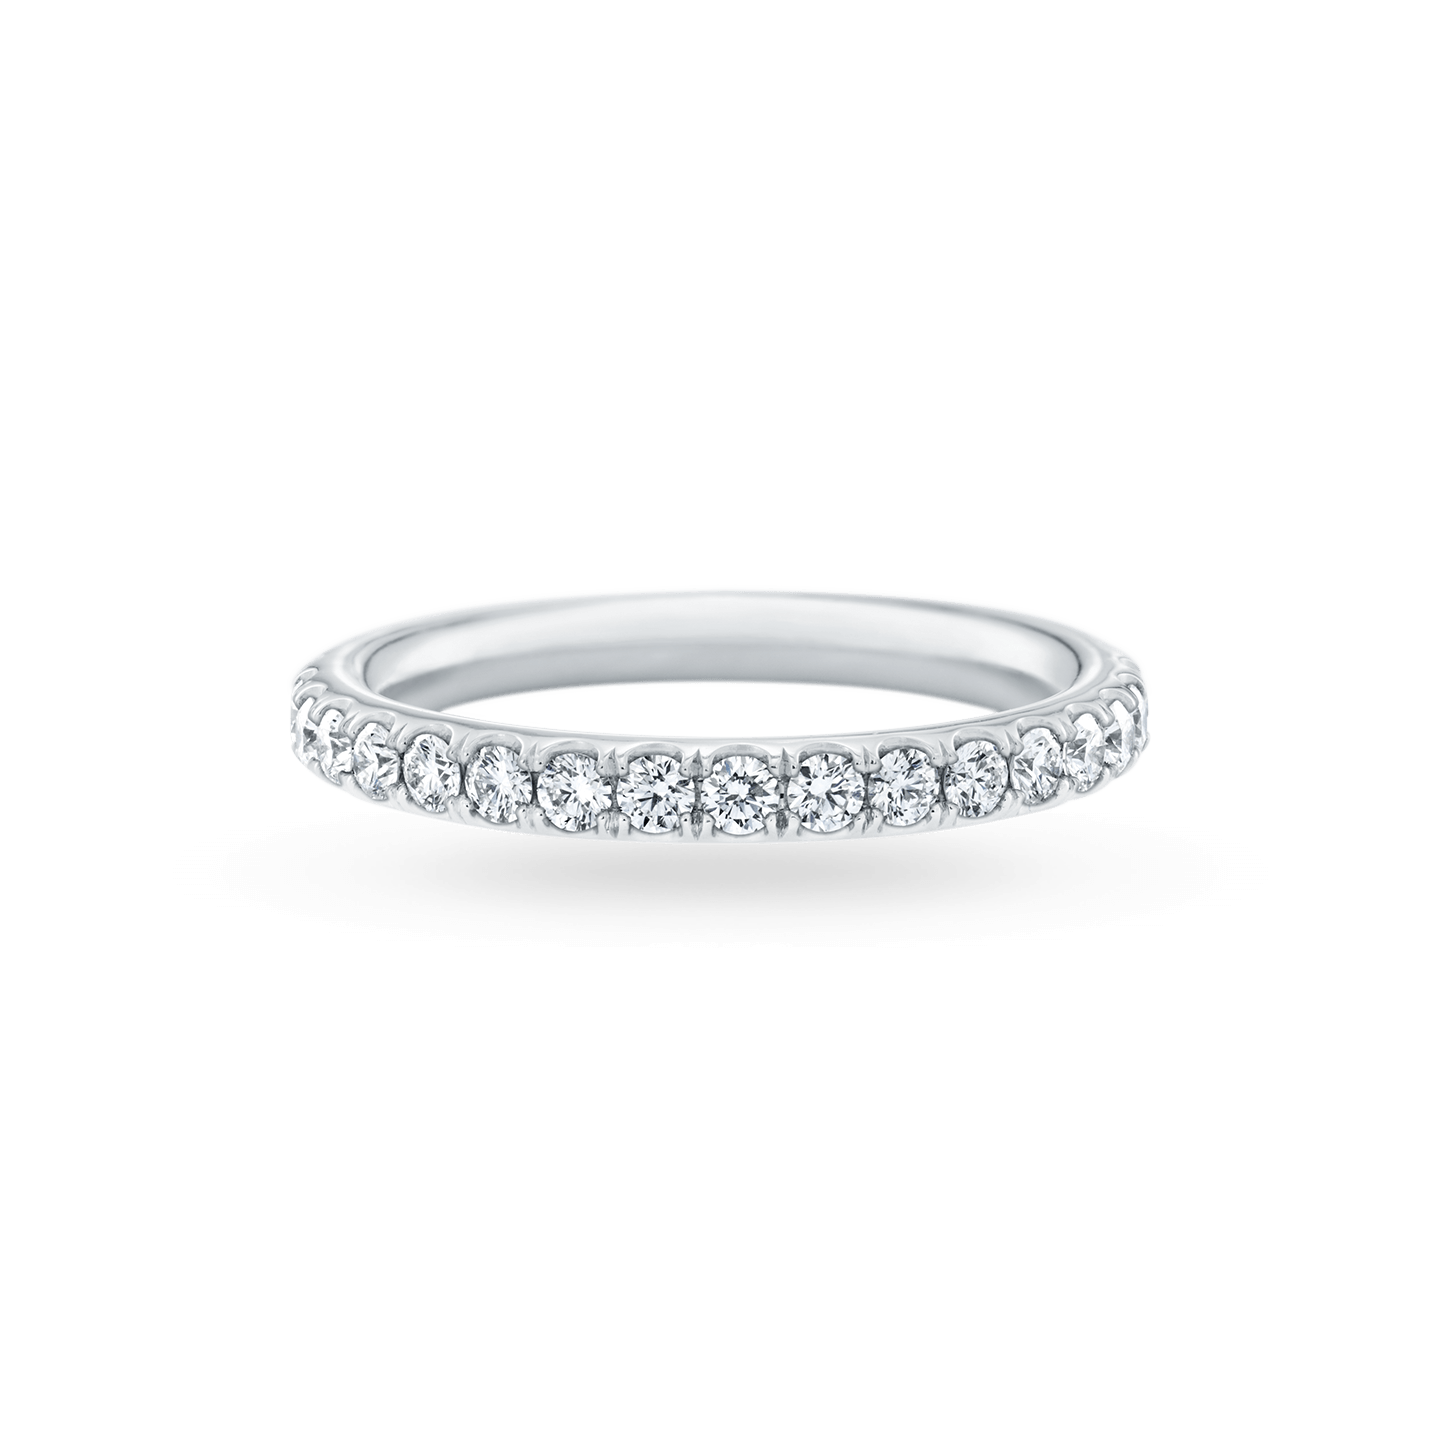 Micropavé Diamond Large Wedding Band, Product Image 1